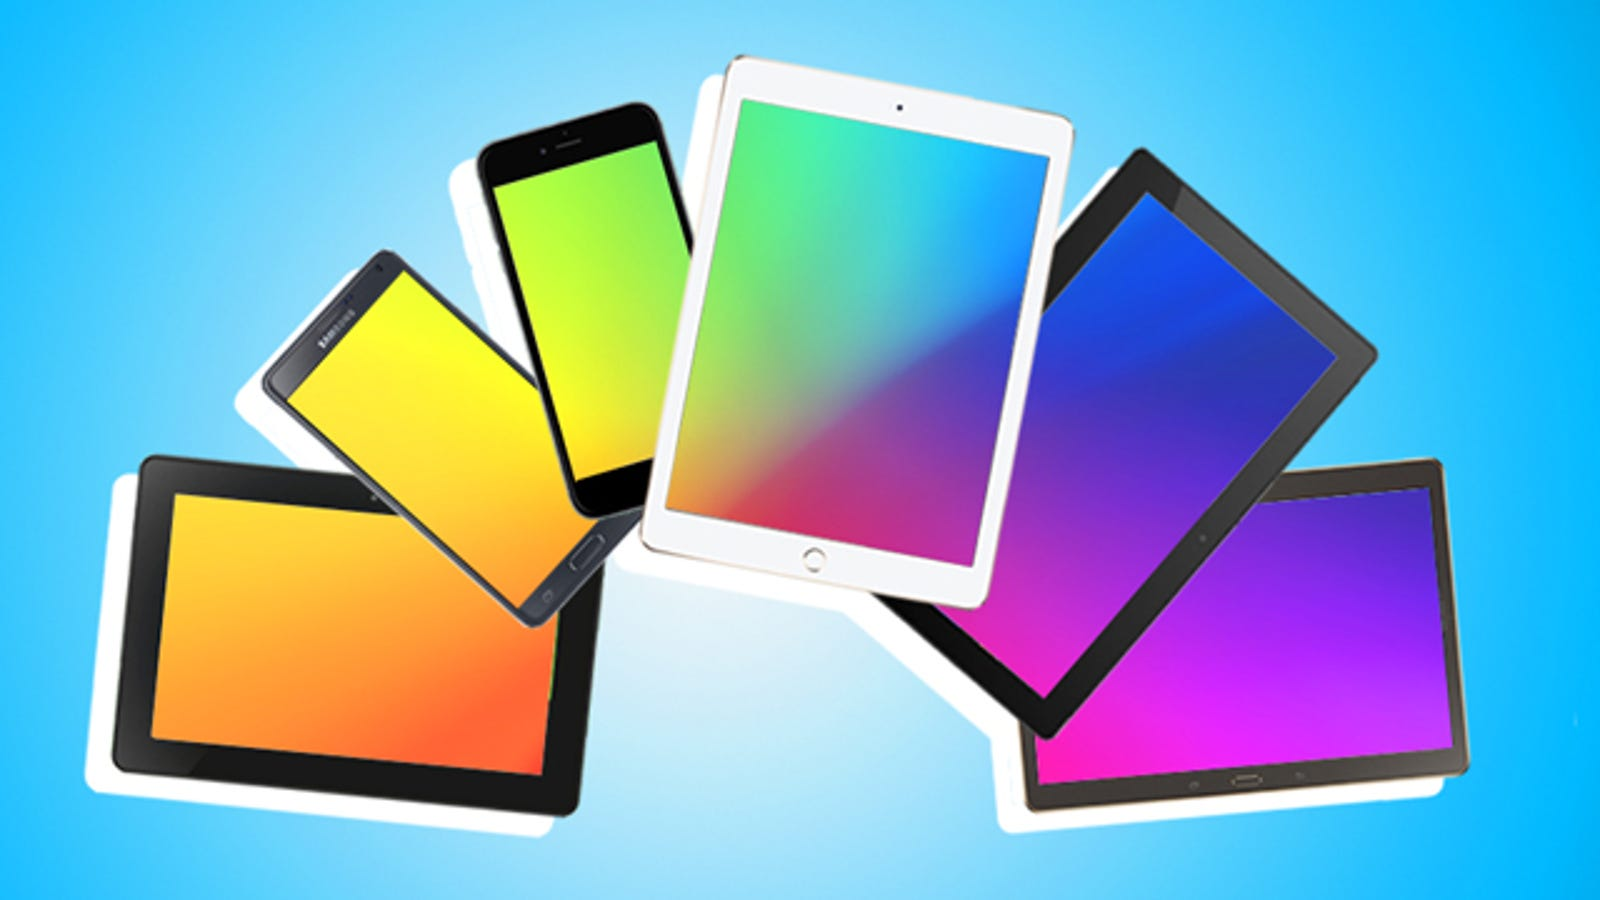 3aa67d343 Which Smartphone and Tablet Displays Show the Most Accurate Colors